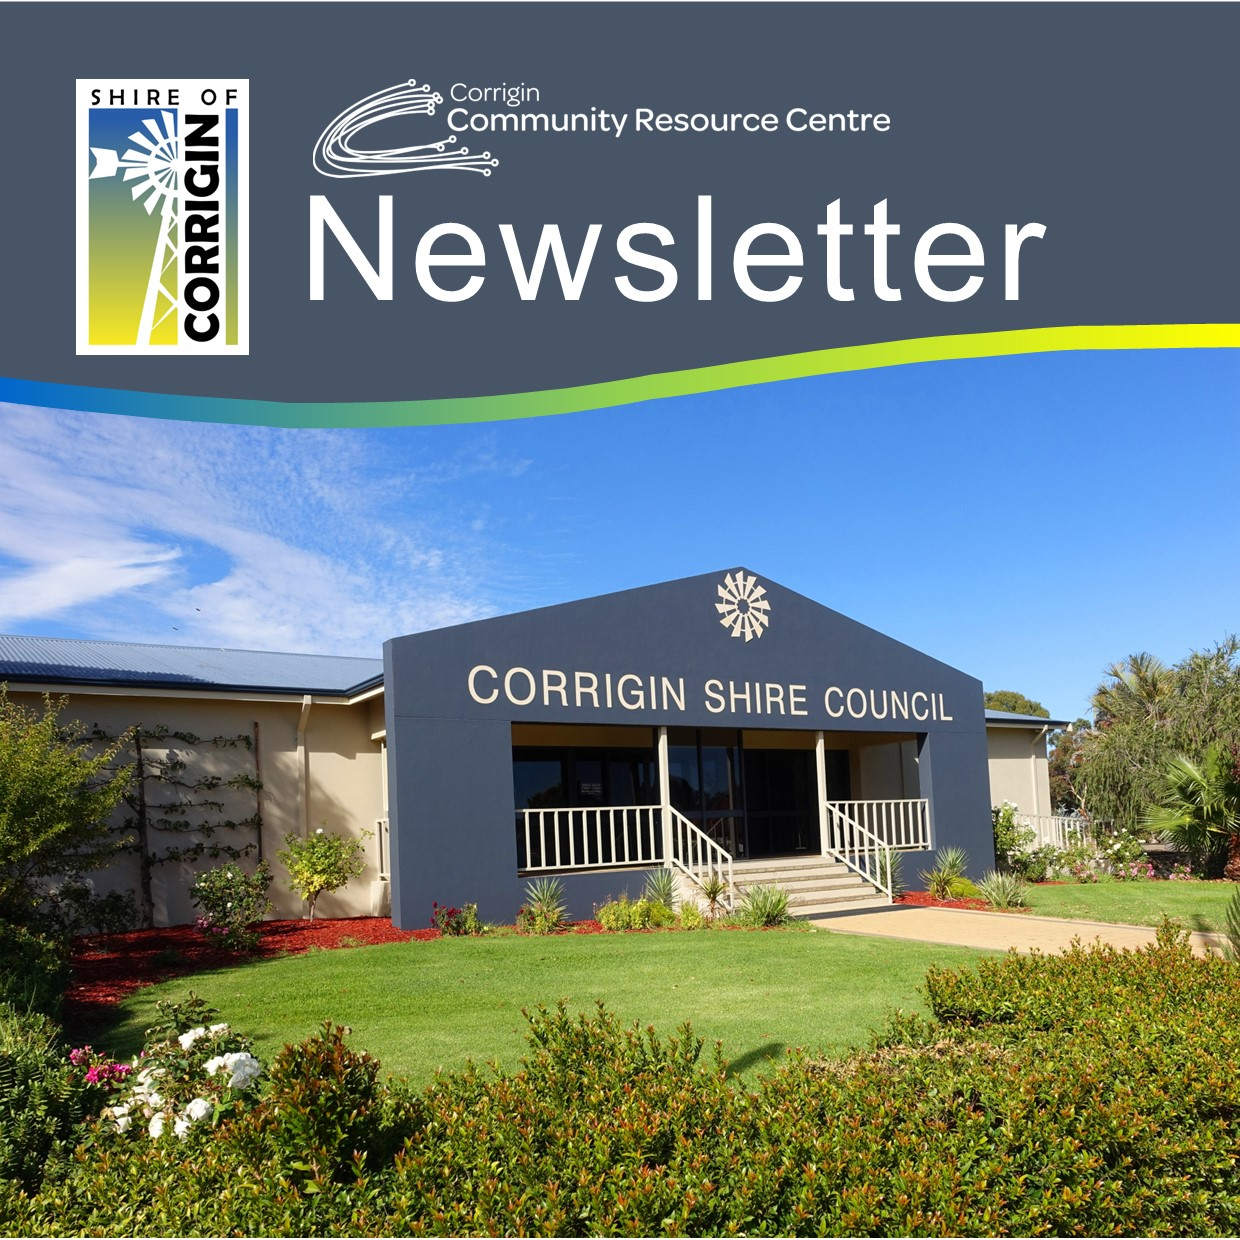 HAVE YOU READ THE LATEST NEWSLETTER EDITION No.34?